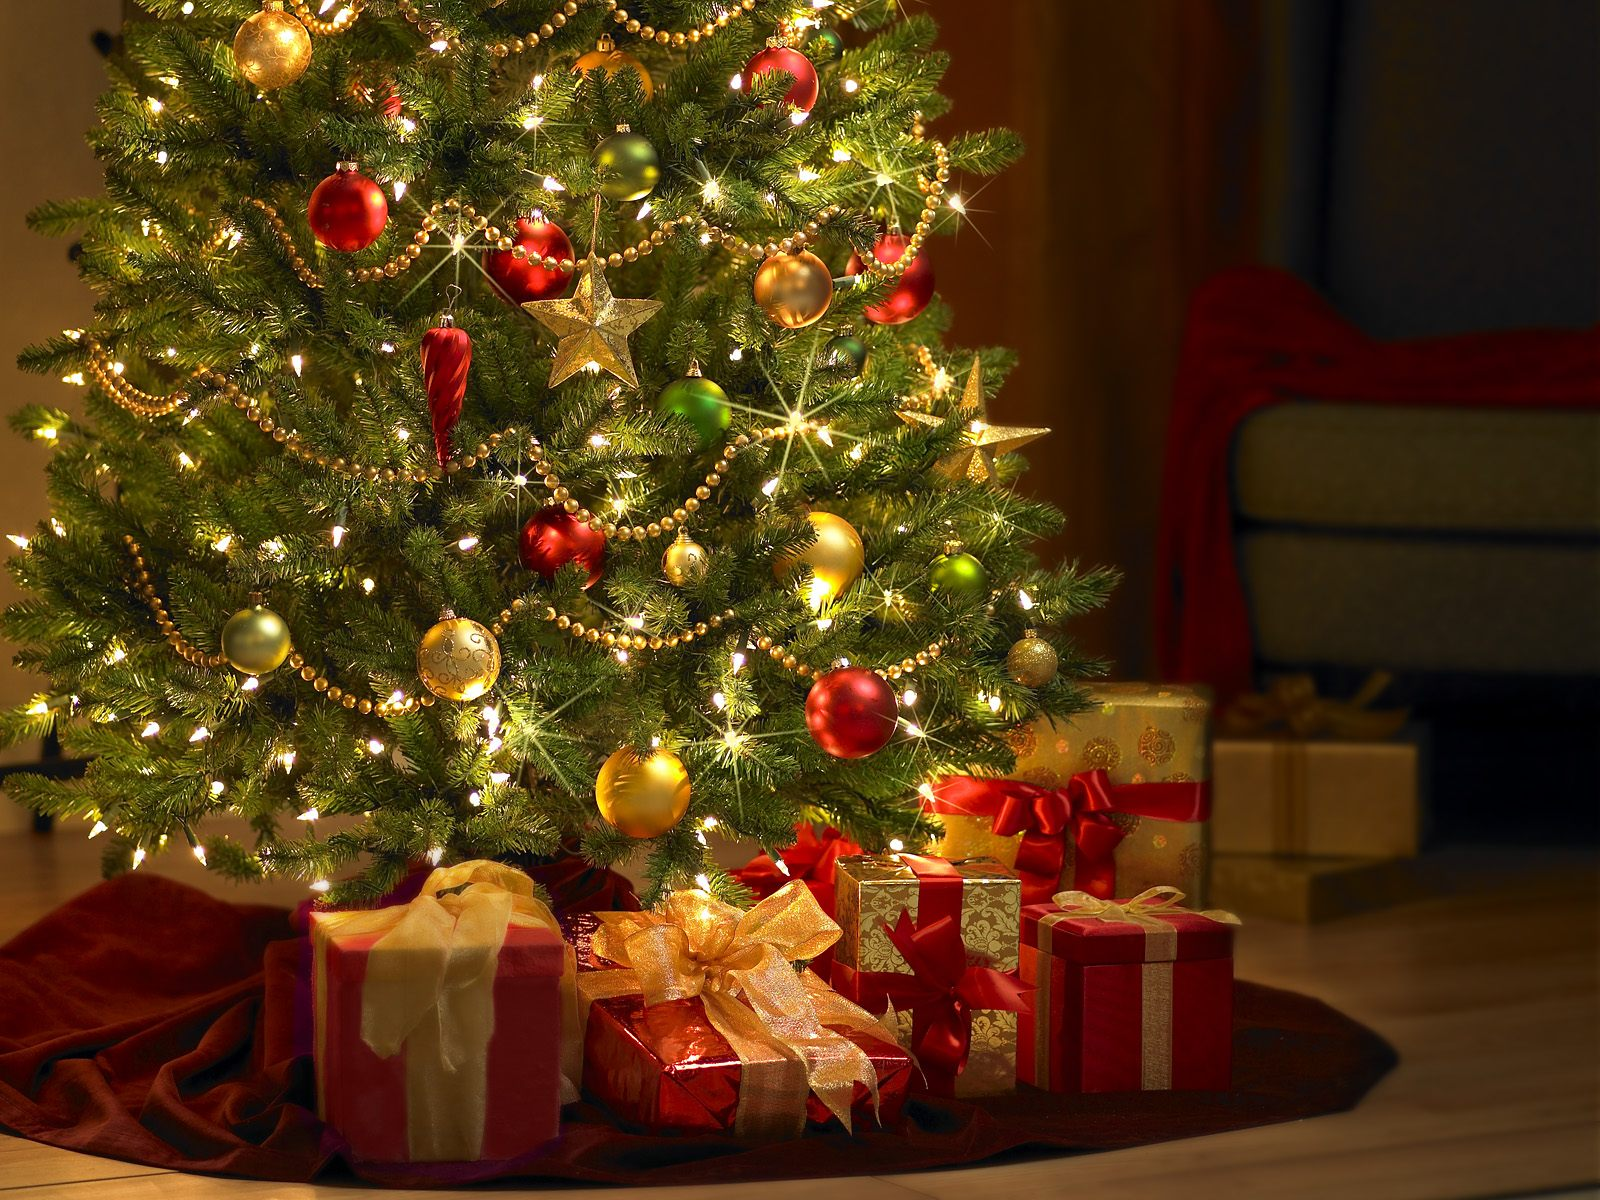 Bright Christmas tree with gifts